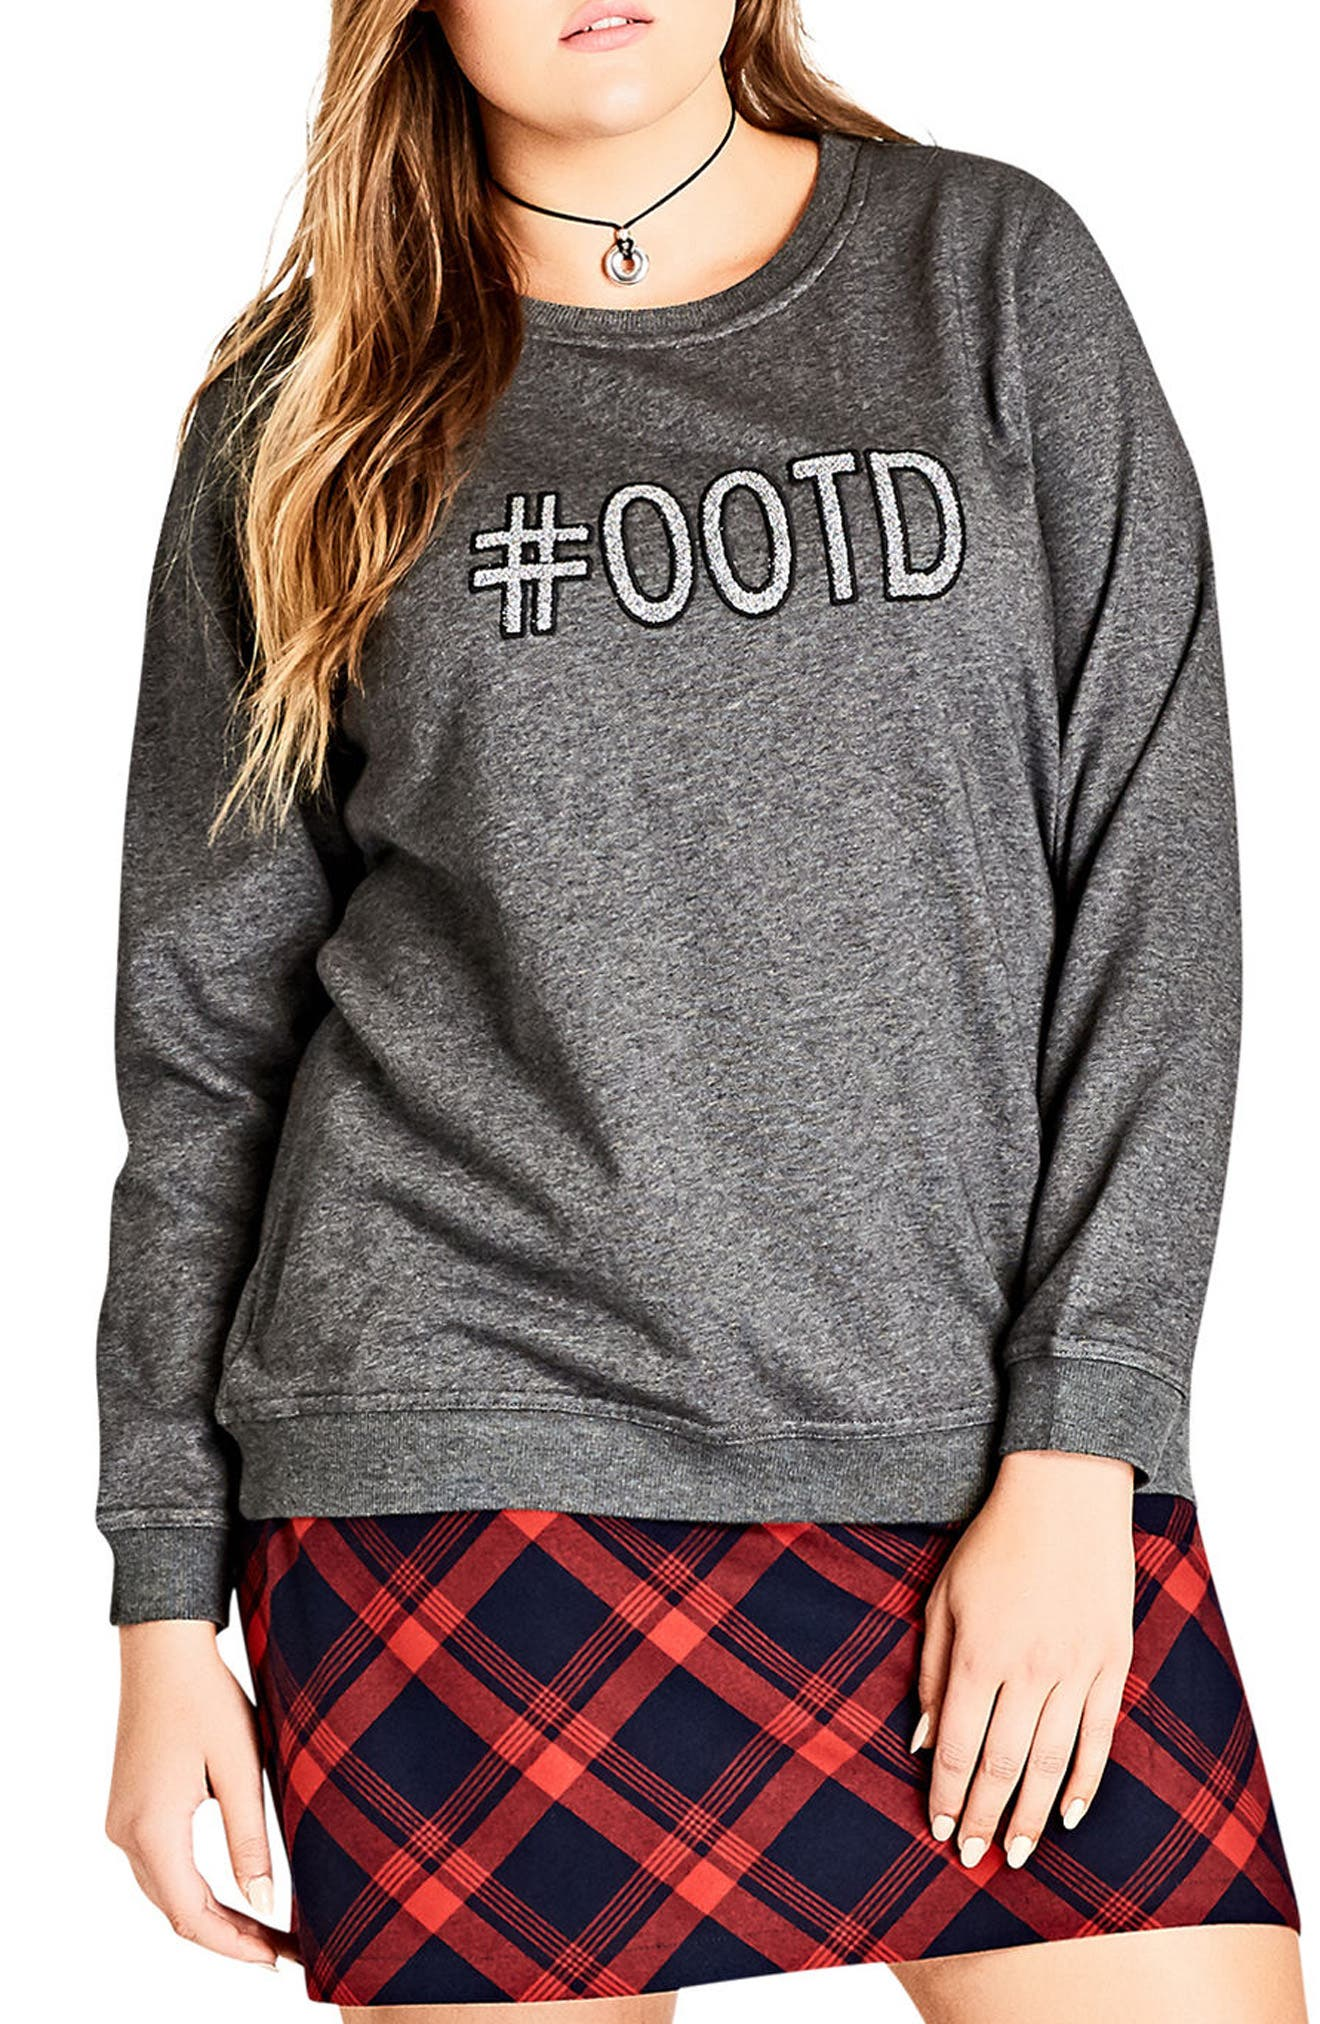 Main Image - City Chic #OOTD Sweatshirt (Plus Size)